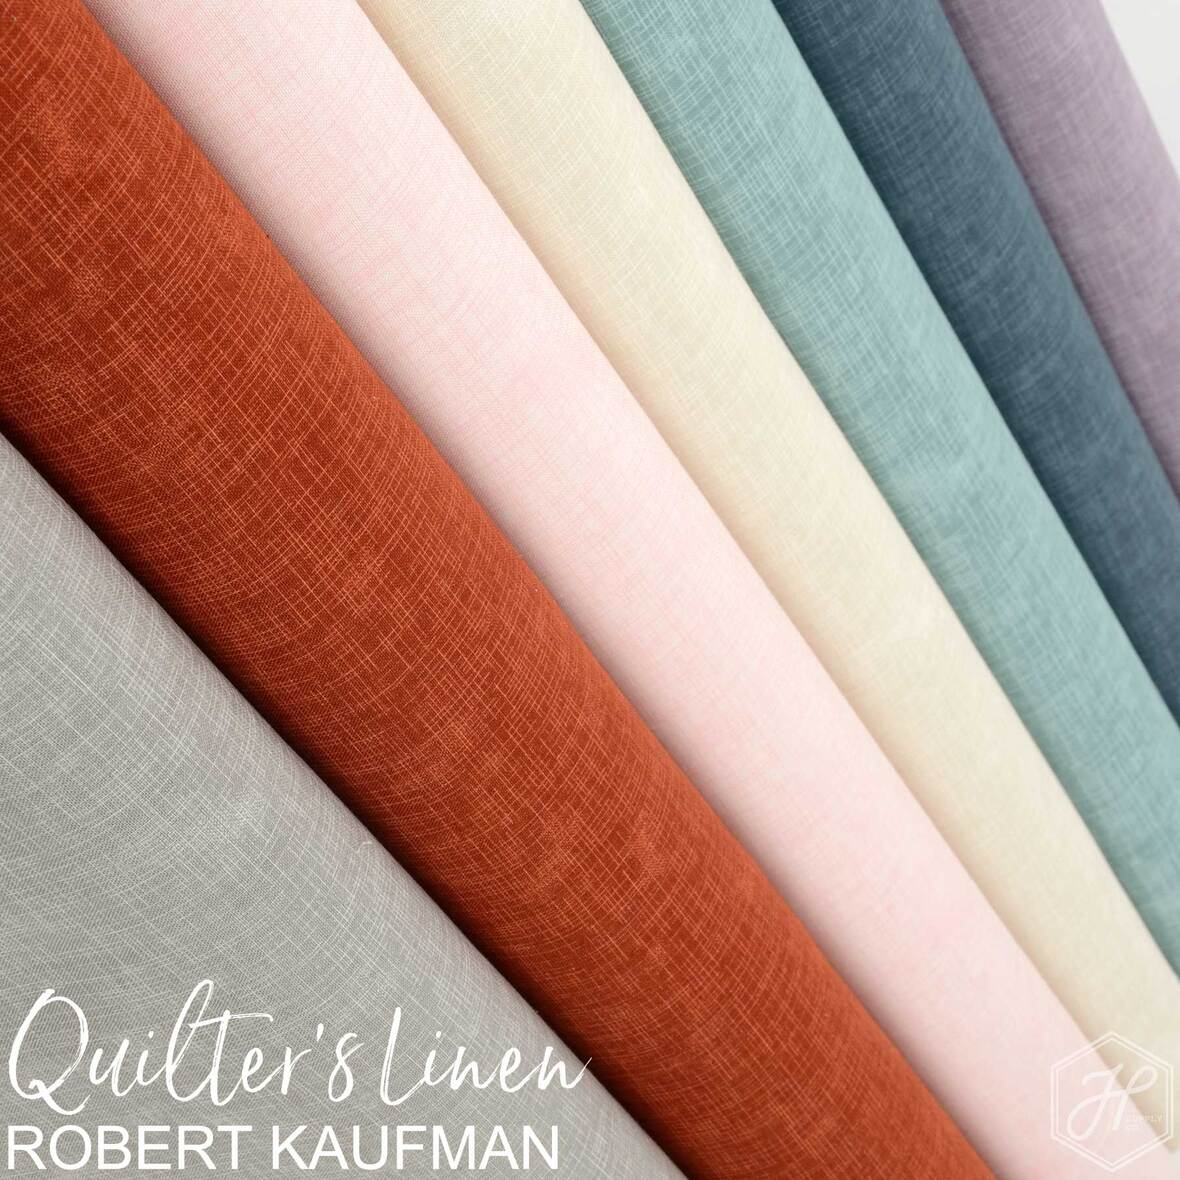 Quilters-Line-Robert-Kaufman-at-Hawthorne-Supply-Co